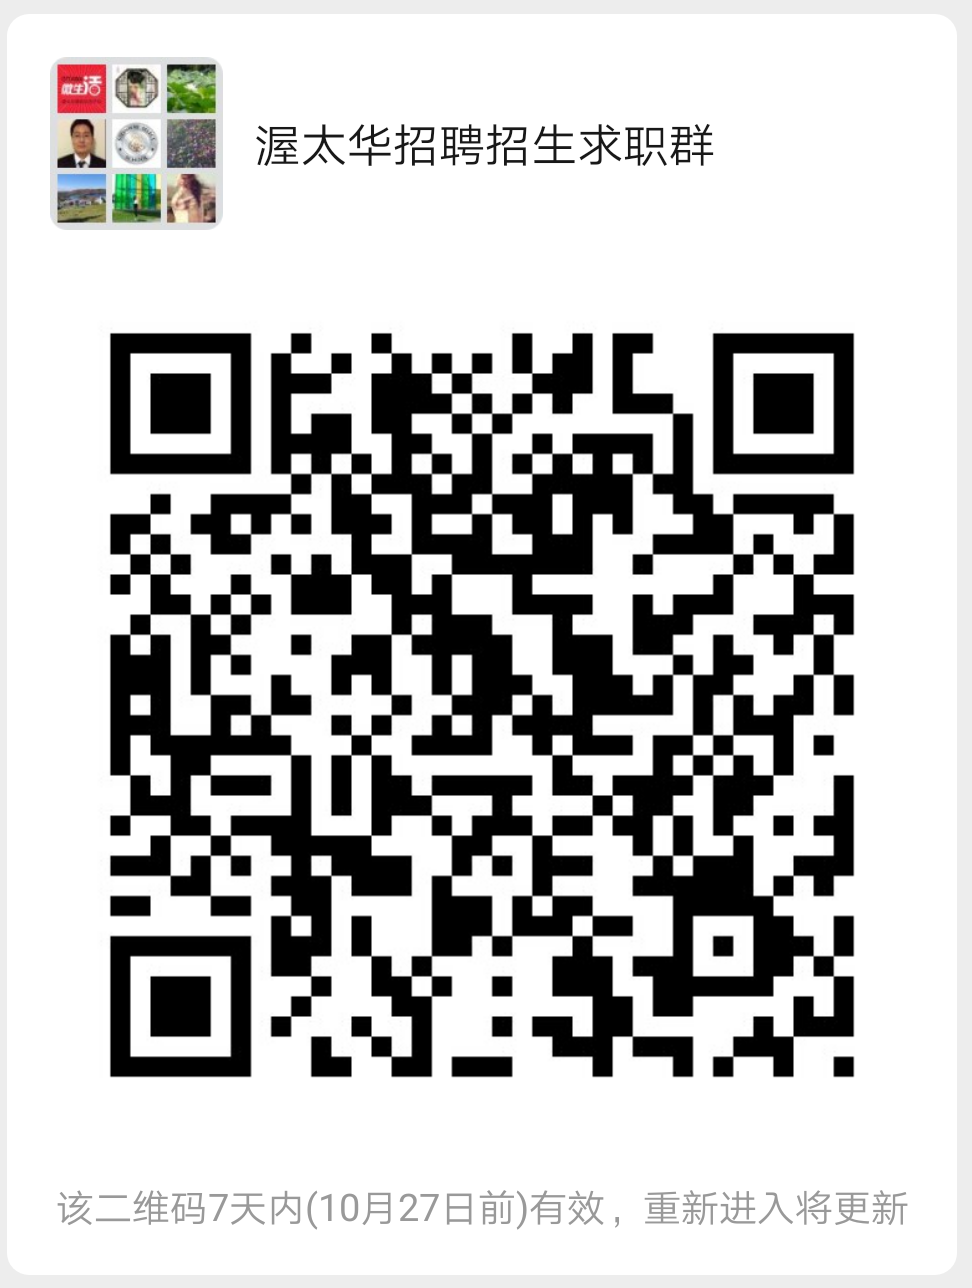 mmqrcode1571585475213.png